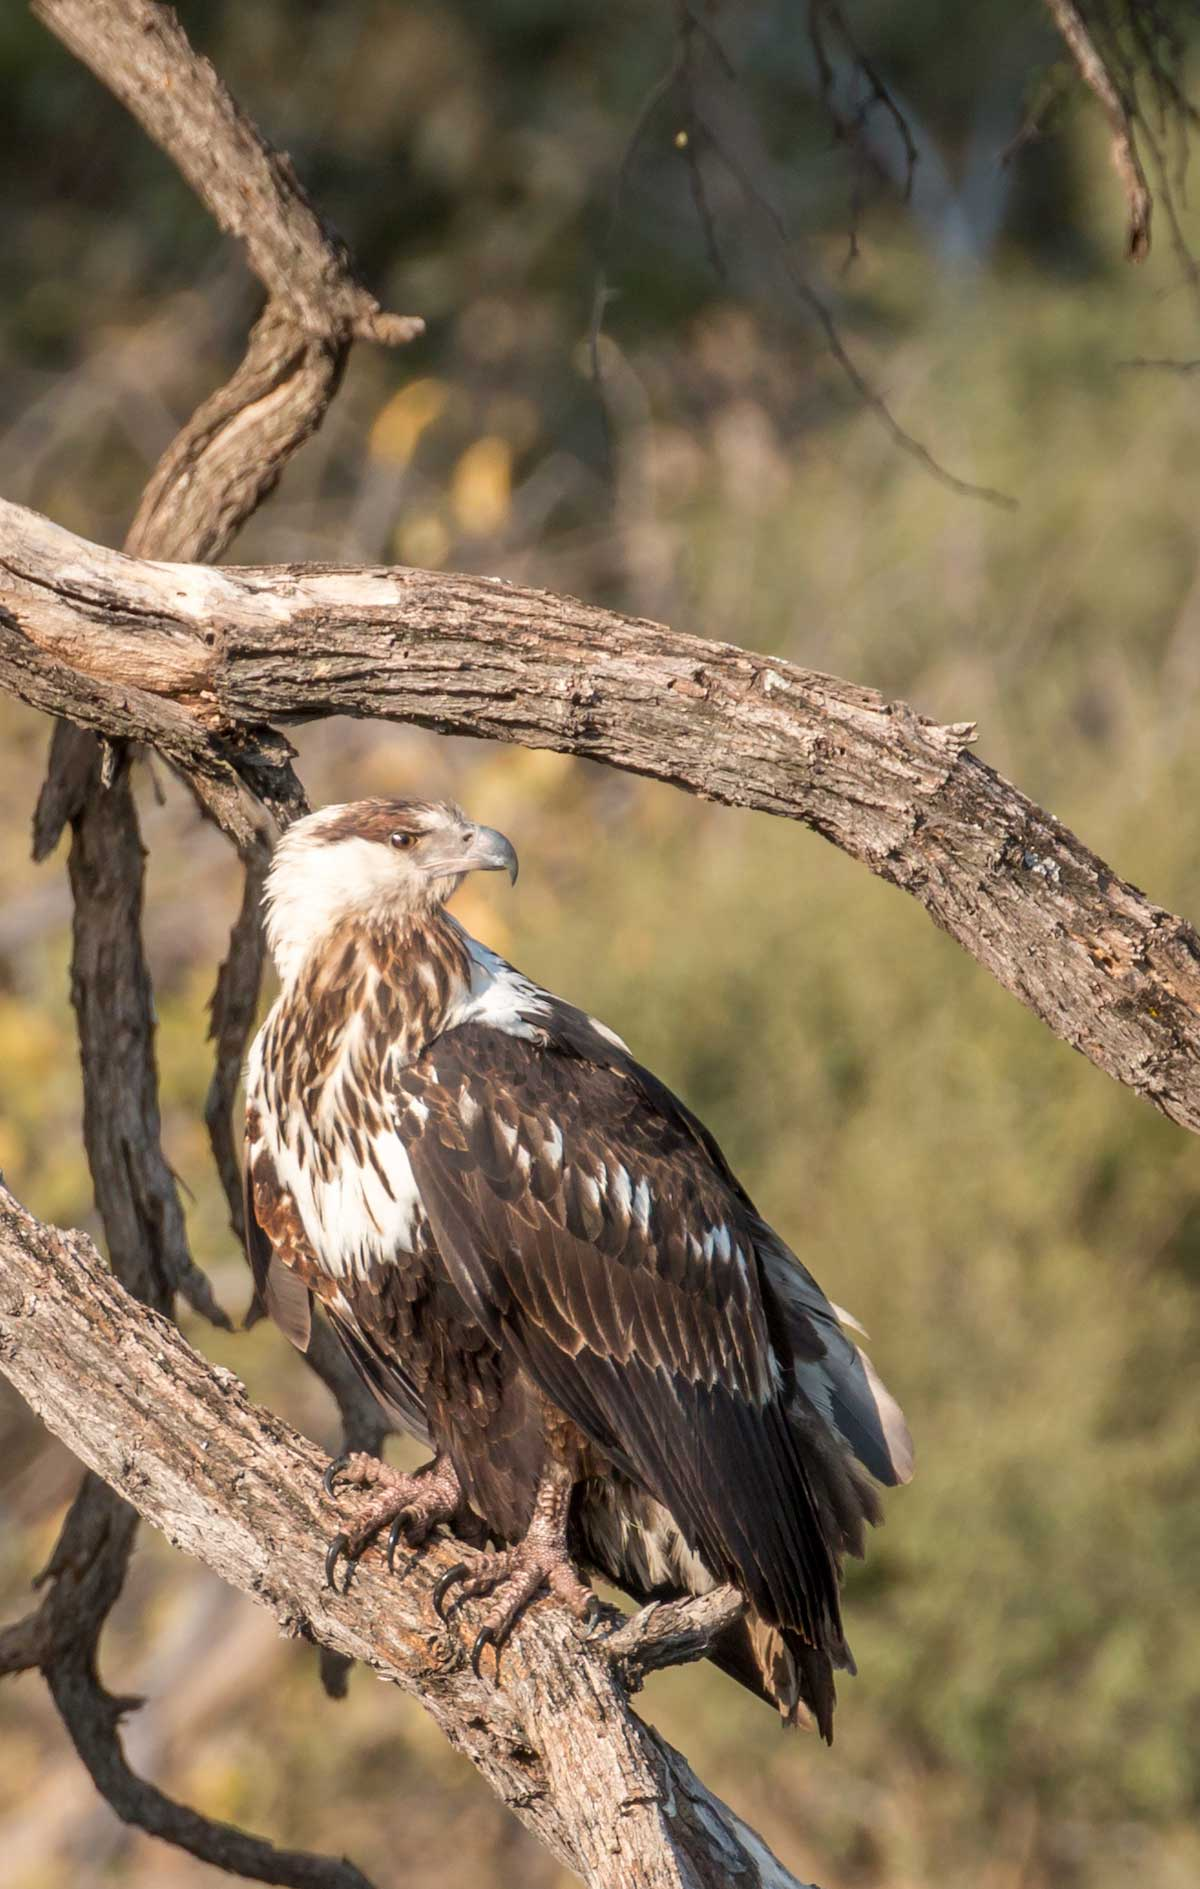 Juvenile Fish eagle in Botswana (credit Rachel Lang)